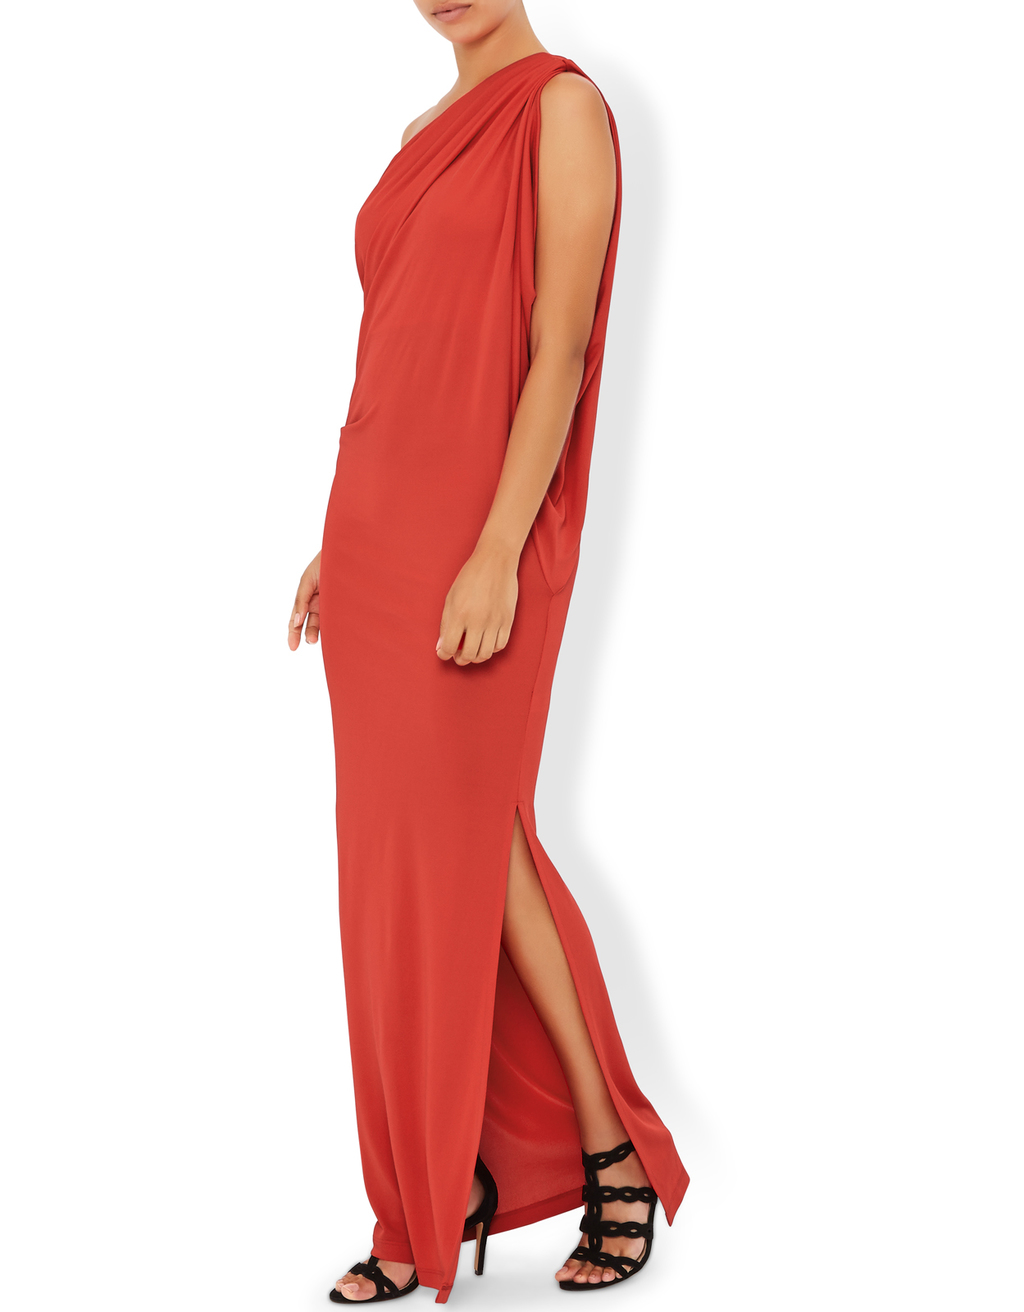 Oona Maxi Dress - fit: loose; pattern: plain; style: maxi dress; sleeve style: asymmetric sleeve; neckline: asymmetric; bust detail: subtle bust detail; predominant colour: bright orange; length: floor length; occasions: occasion; sleeve length: sleeveless; pattern type: fabric; pattern size: standard; texture group: jersey - stretchy/drapey; fibres: viscose/rayon - mix; season: s/s 2016; wardrobe: event